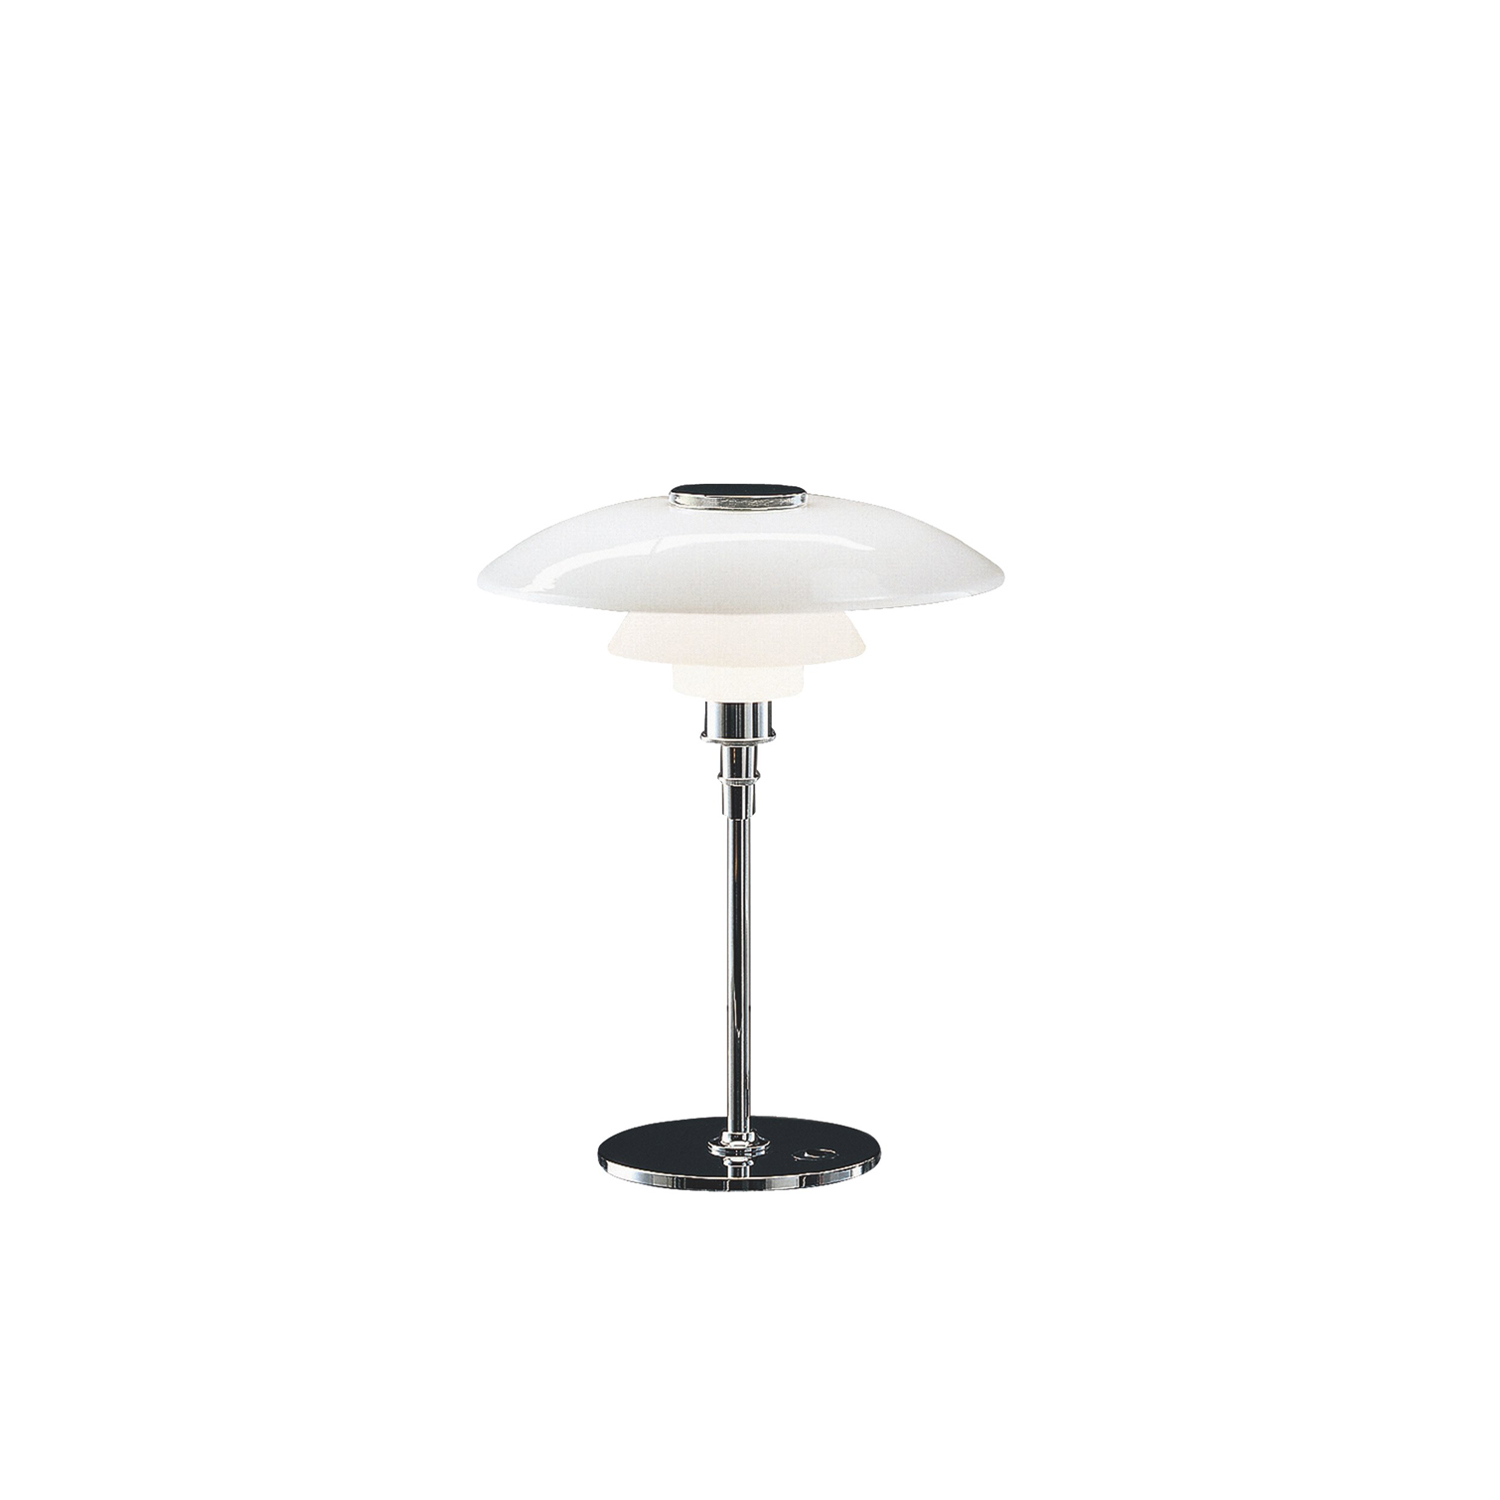 PH 4½-3½ Table Lamp - The fixture is designed based on the principle of a reflective three-shade system, which directs the majority of the light downwards. The shades are made of mouth-blown opal three-layer glass, which is glossy on top and sandblasted matt on the underside, giving a soft and diffuse light distribution. | Matter of Stuff